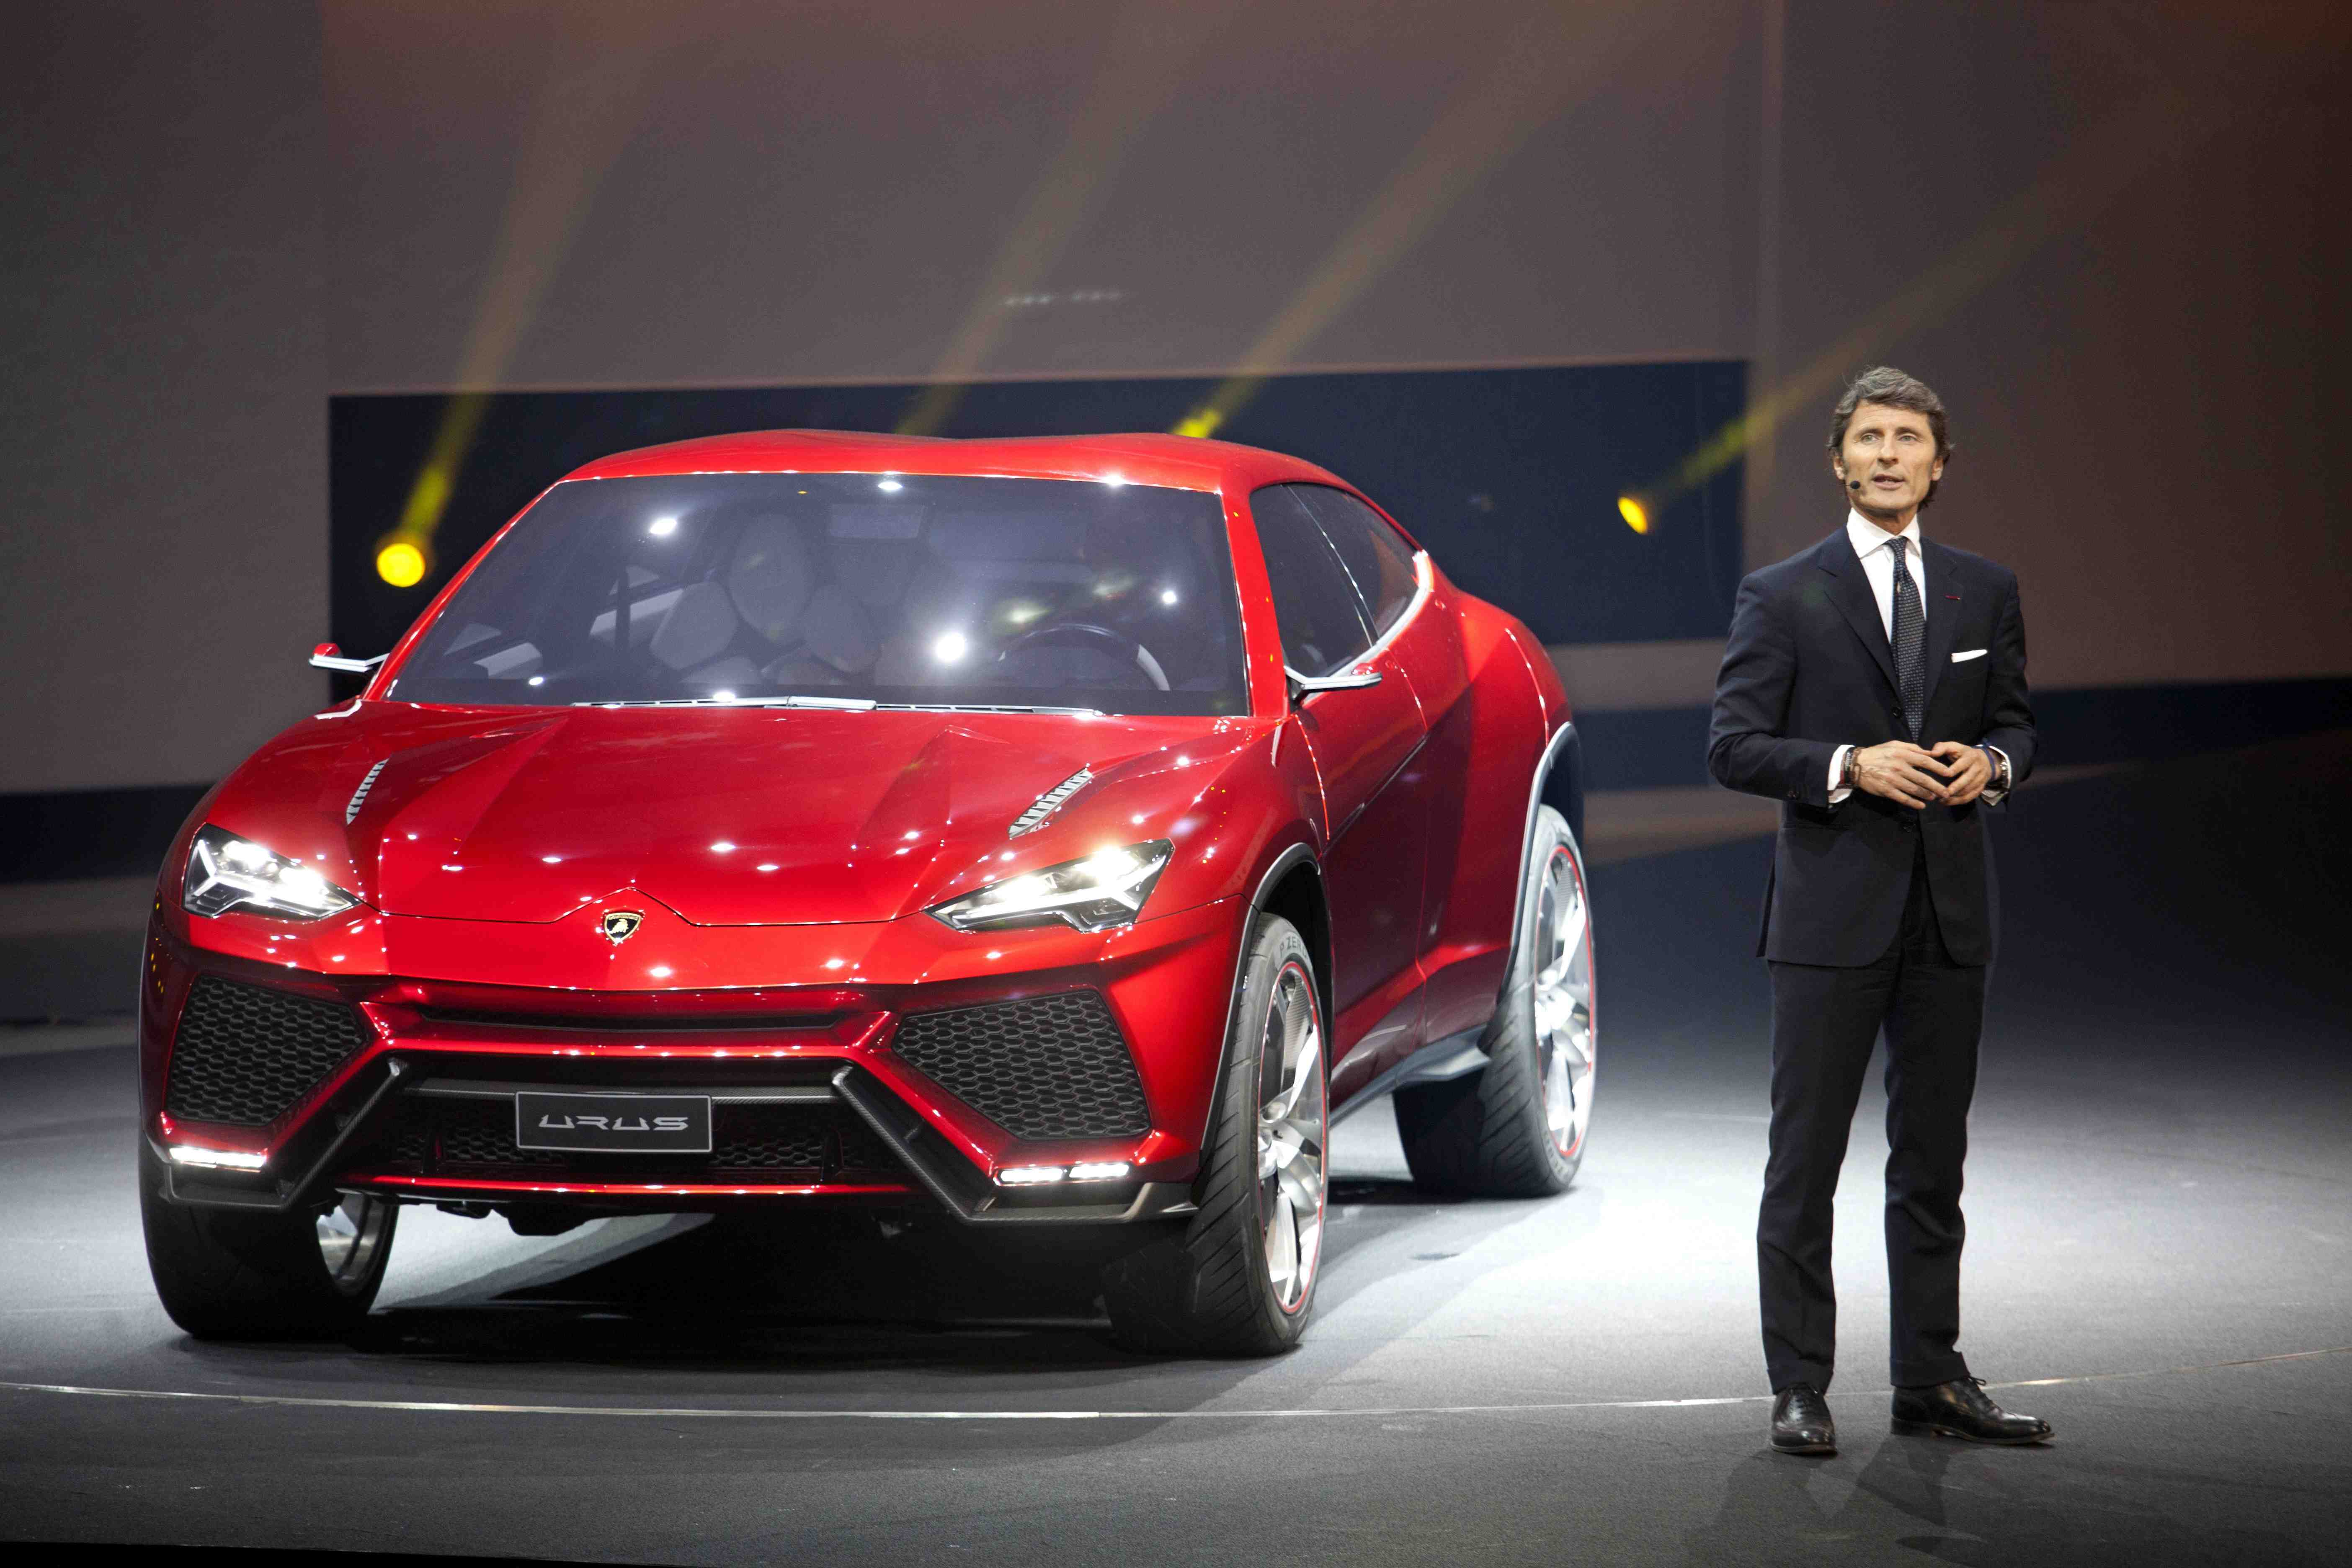 Lamborghini ceo Stephan Winkelman with the new Urus SUV concept